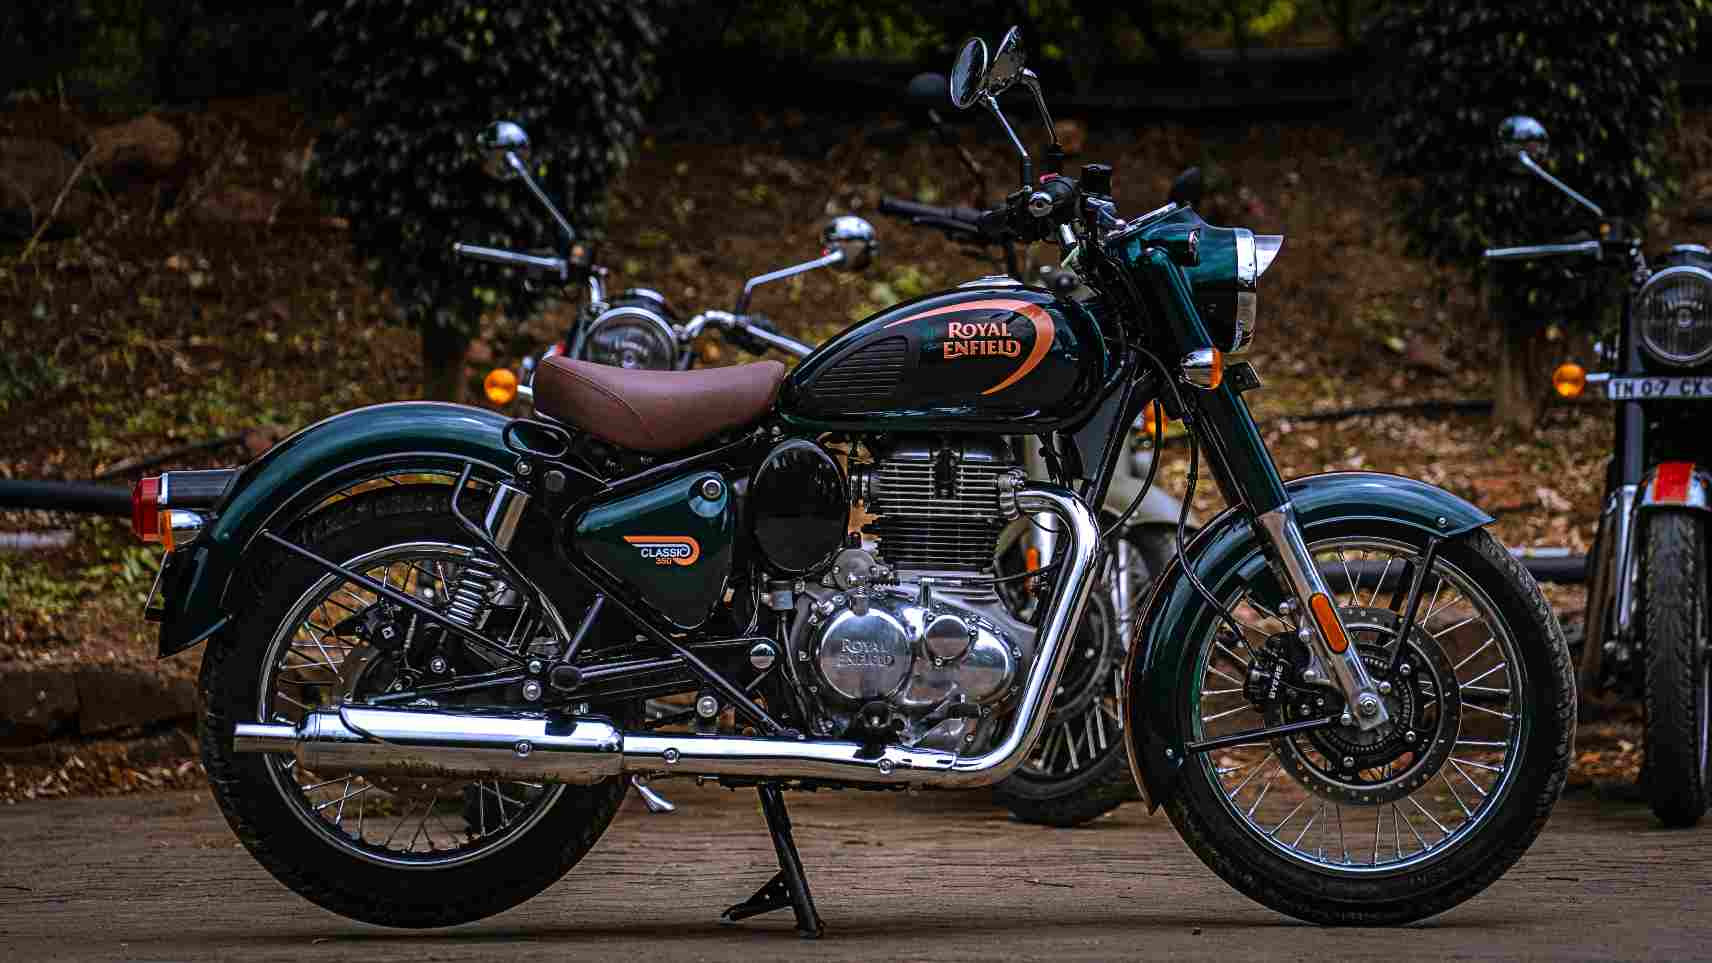 It may look familiar, but the new Classic 350 is a clear leap over its predecessor in terms of ability. Image: Royal Enfield